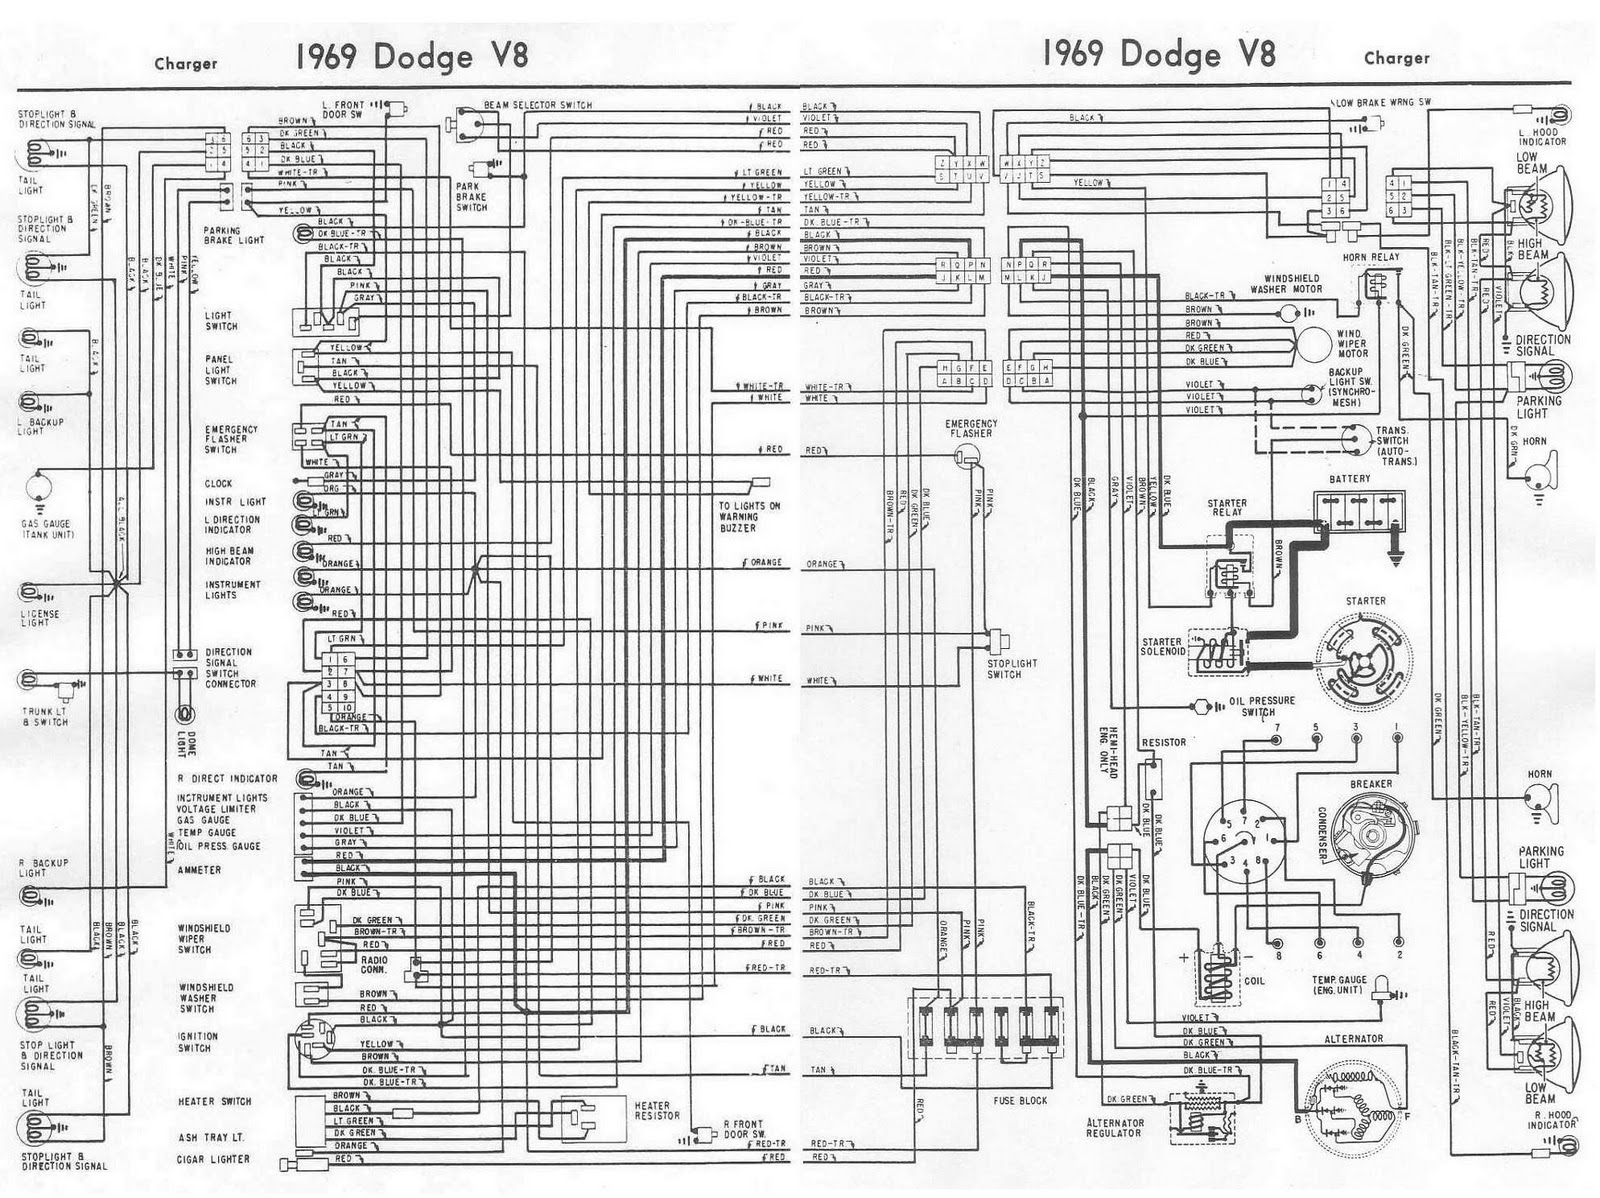 hight resolution of dodge charger 1969 v8 complete electrical wiring diagram 2012 dodge charger police package wiring diagram 2012 dodge charger police package wiring diagram